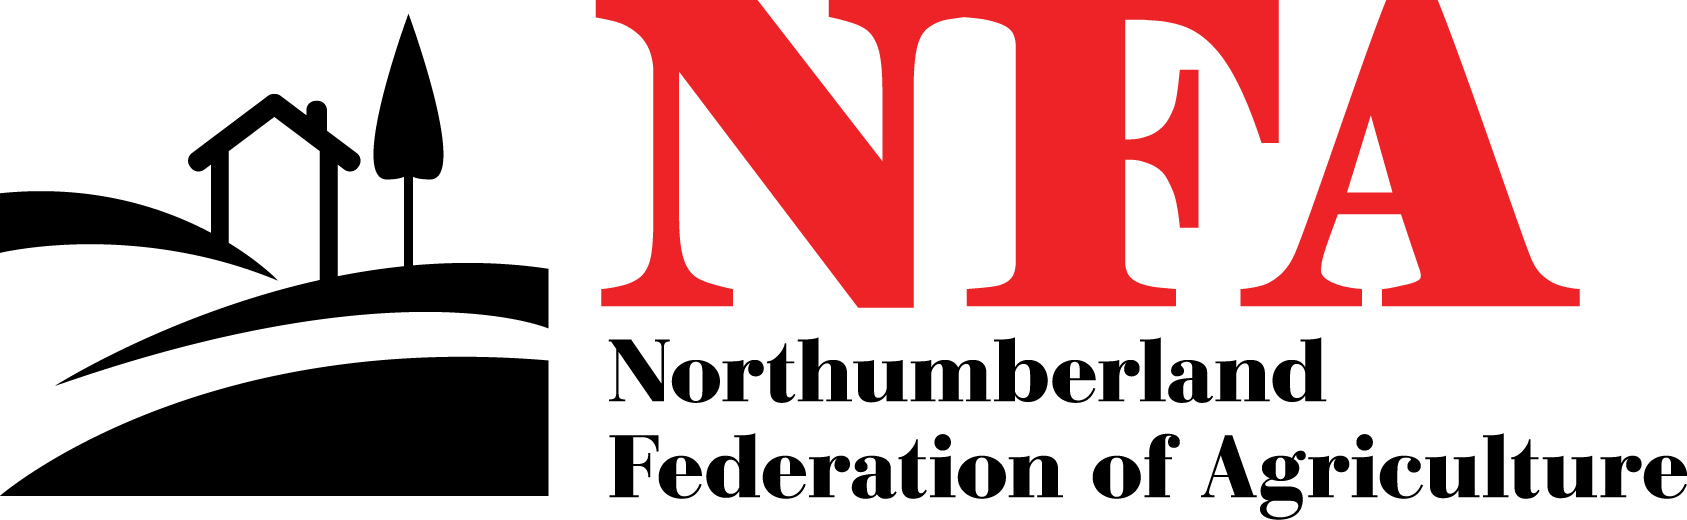 Northumberland Federation of Agriculture